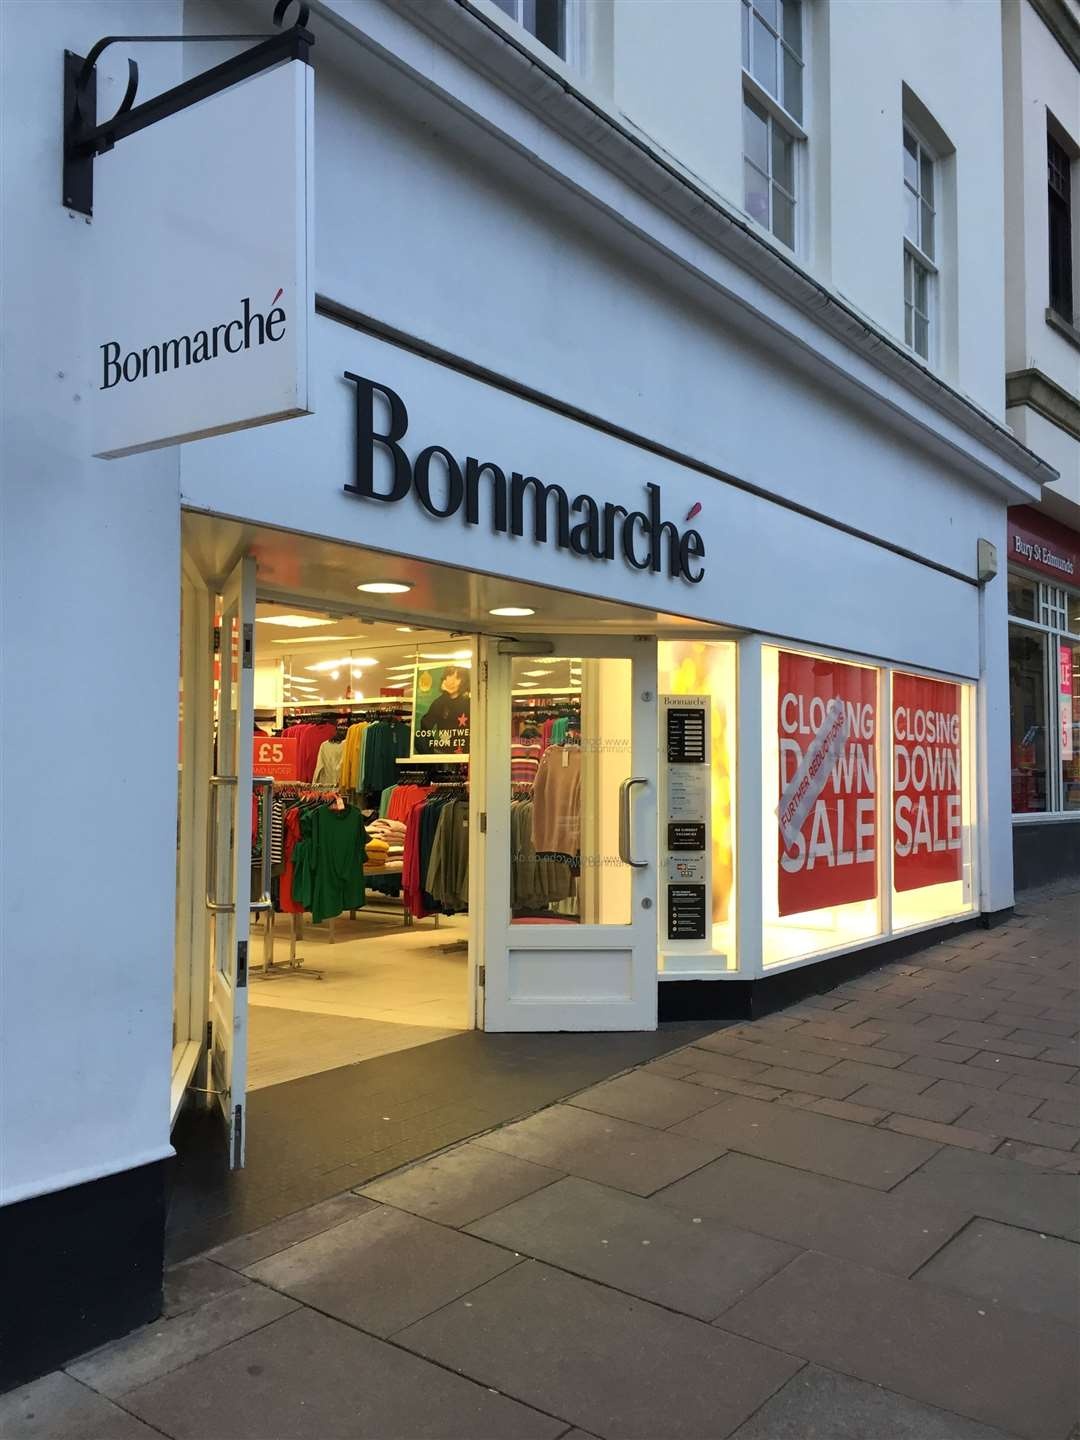 Closing down signs have gone up at Bon Marche, in Bury St Edmunds (26264085)